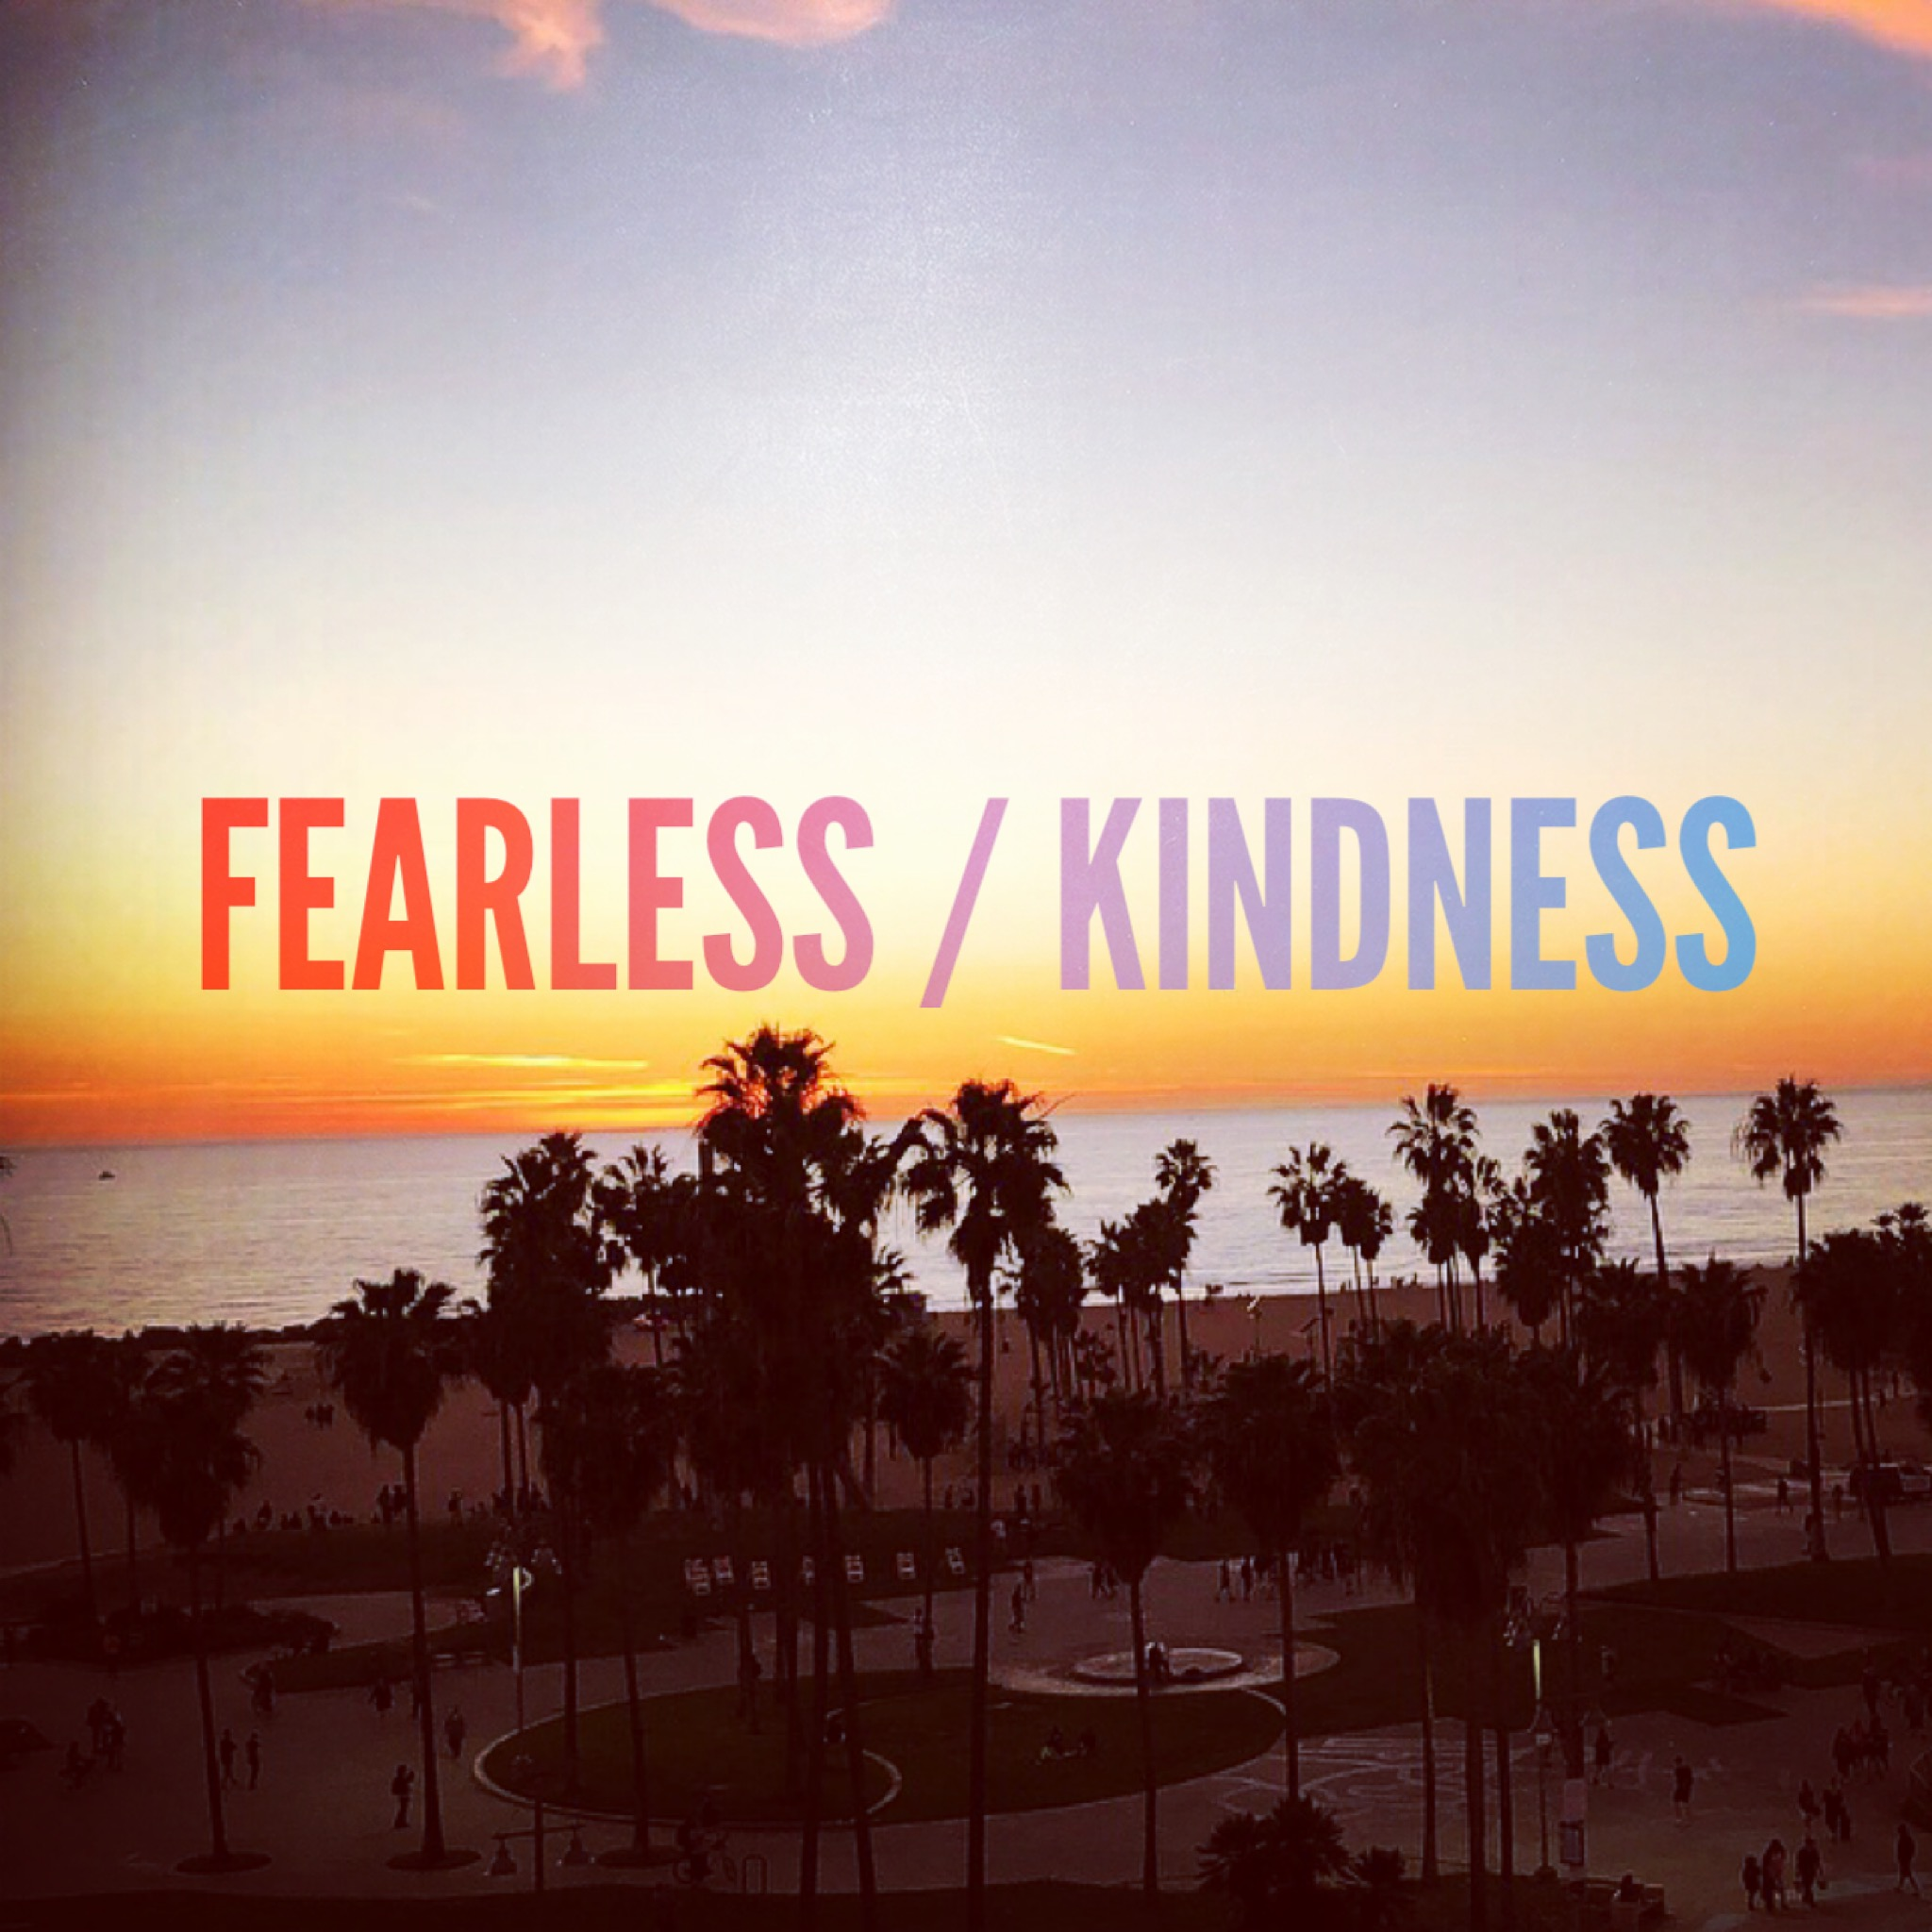 FearlessKindness